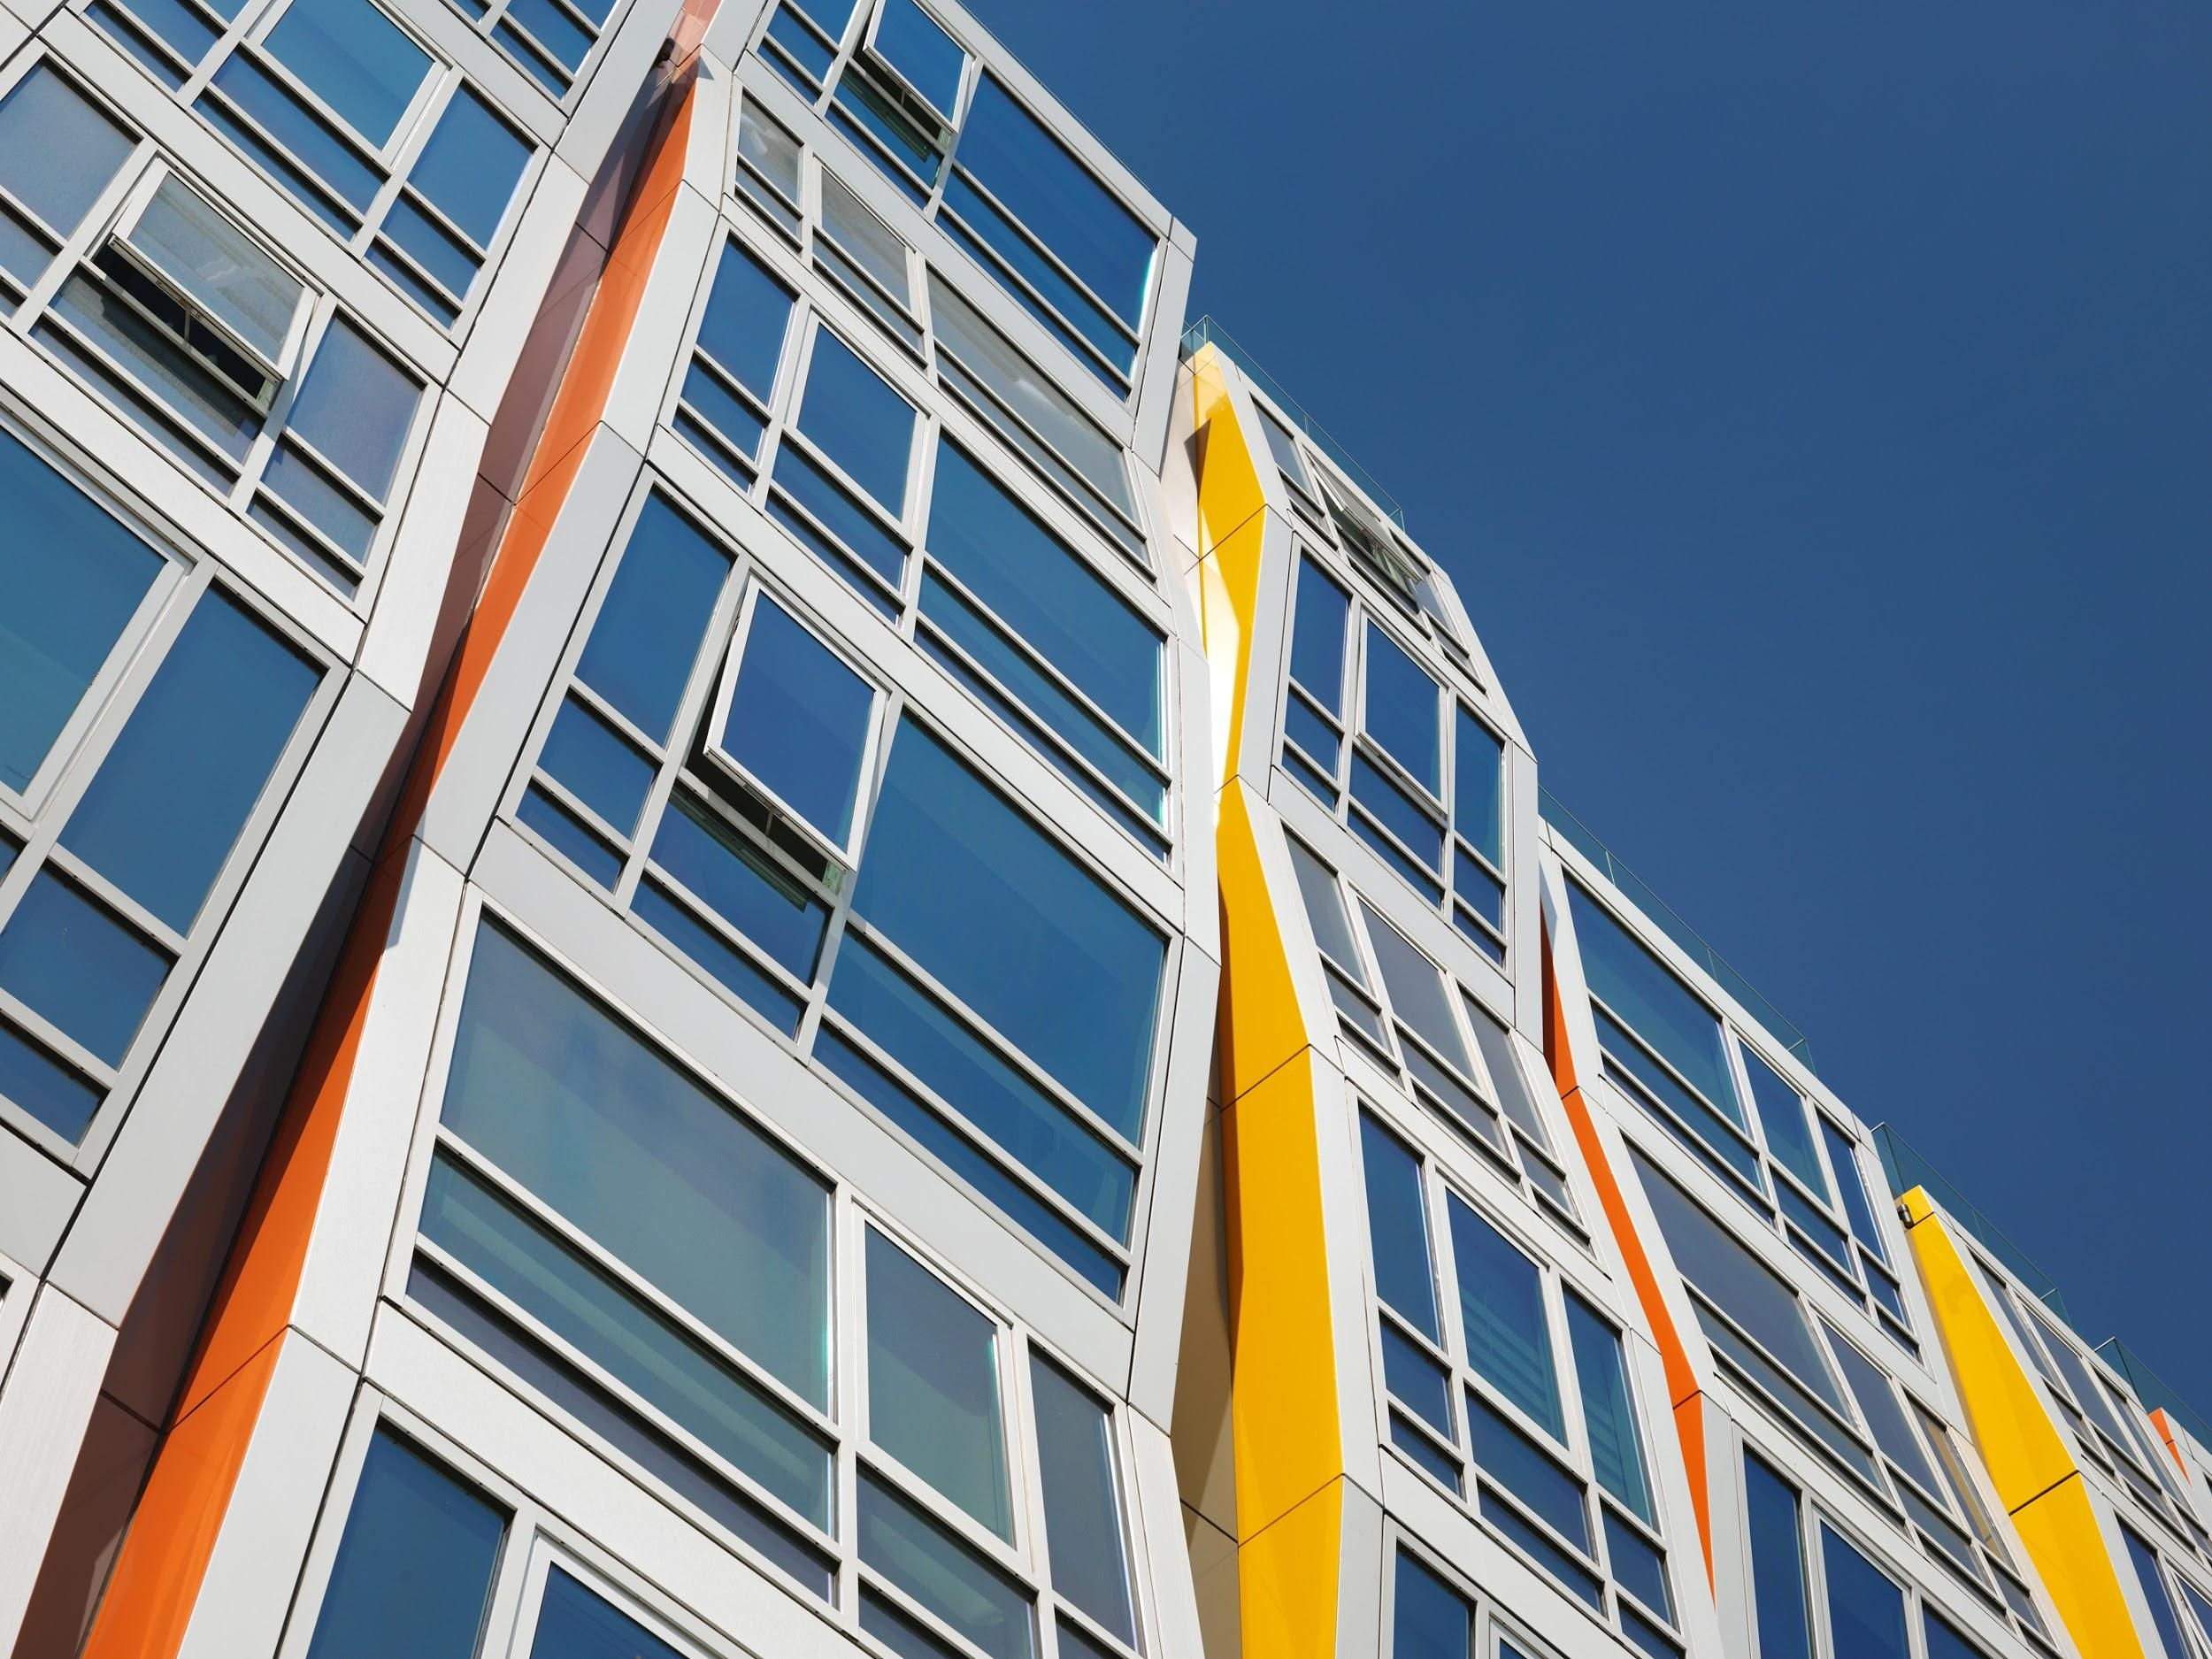 How to Let In Light But Keep Out Heat Using Glass Façades